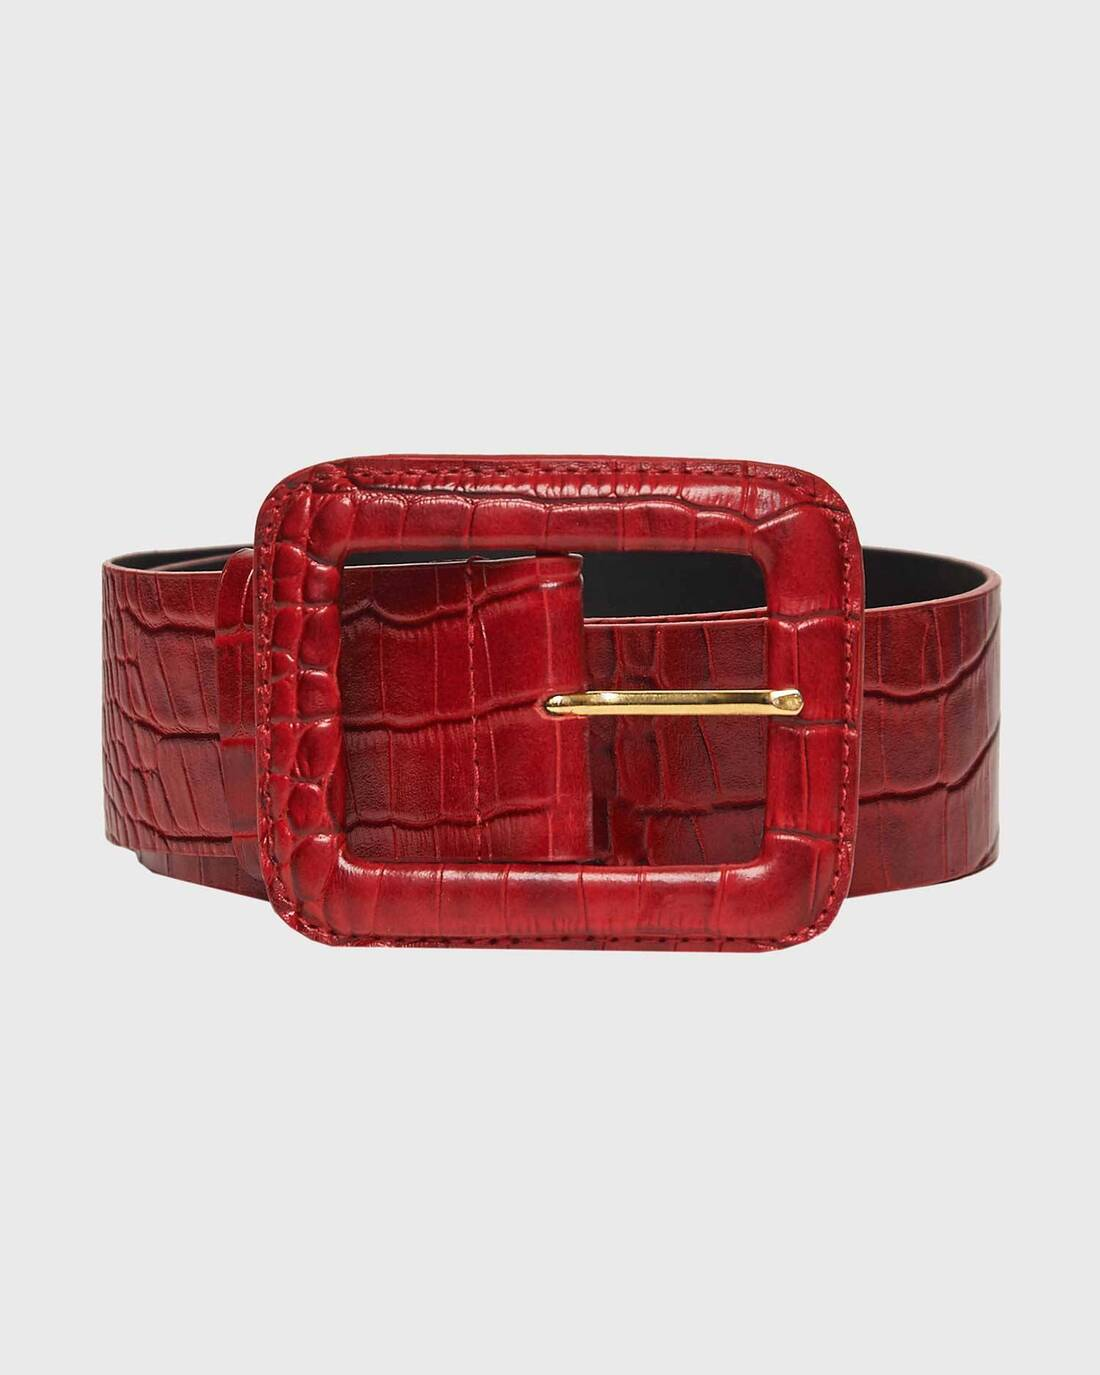 Reptile texturized leather belt